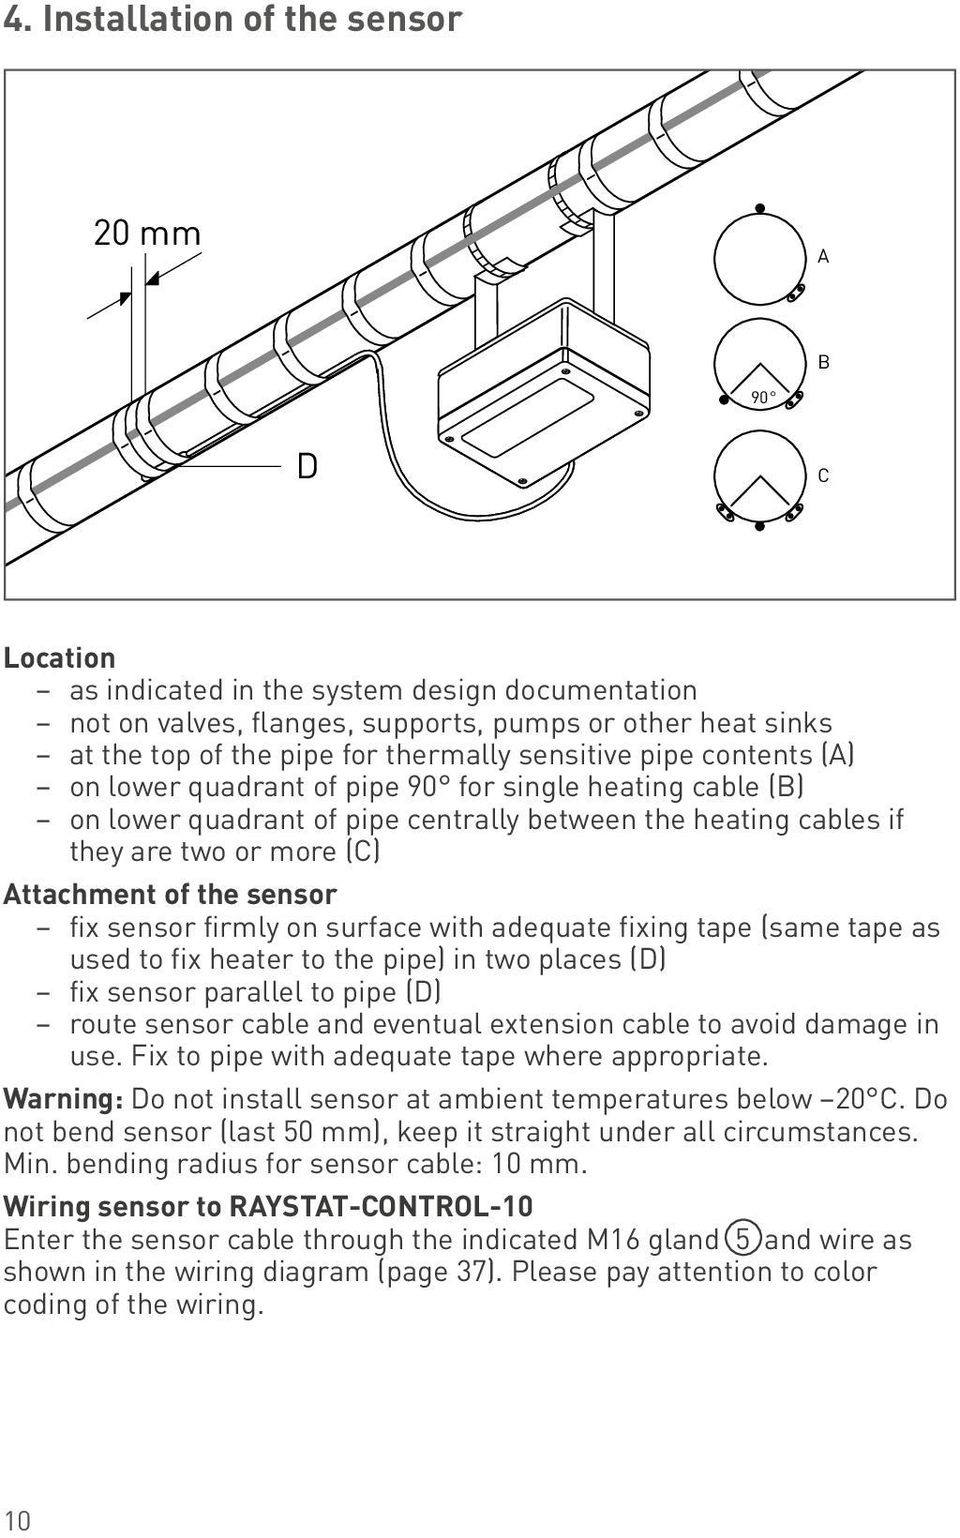 of the sensor fix sensor firmly on surface with adequate fixing tape (same tape as used to fix heater to the pipe) in two places (D) fix sensor parallel to pipe (D) route sensor cable and eventual